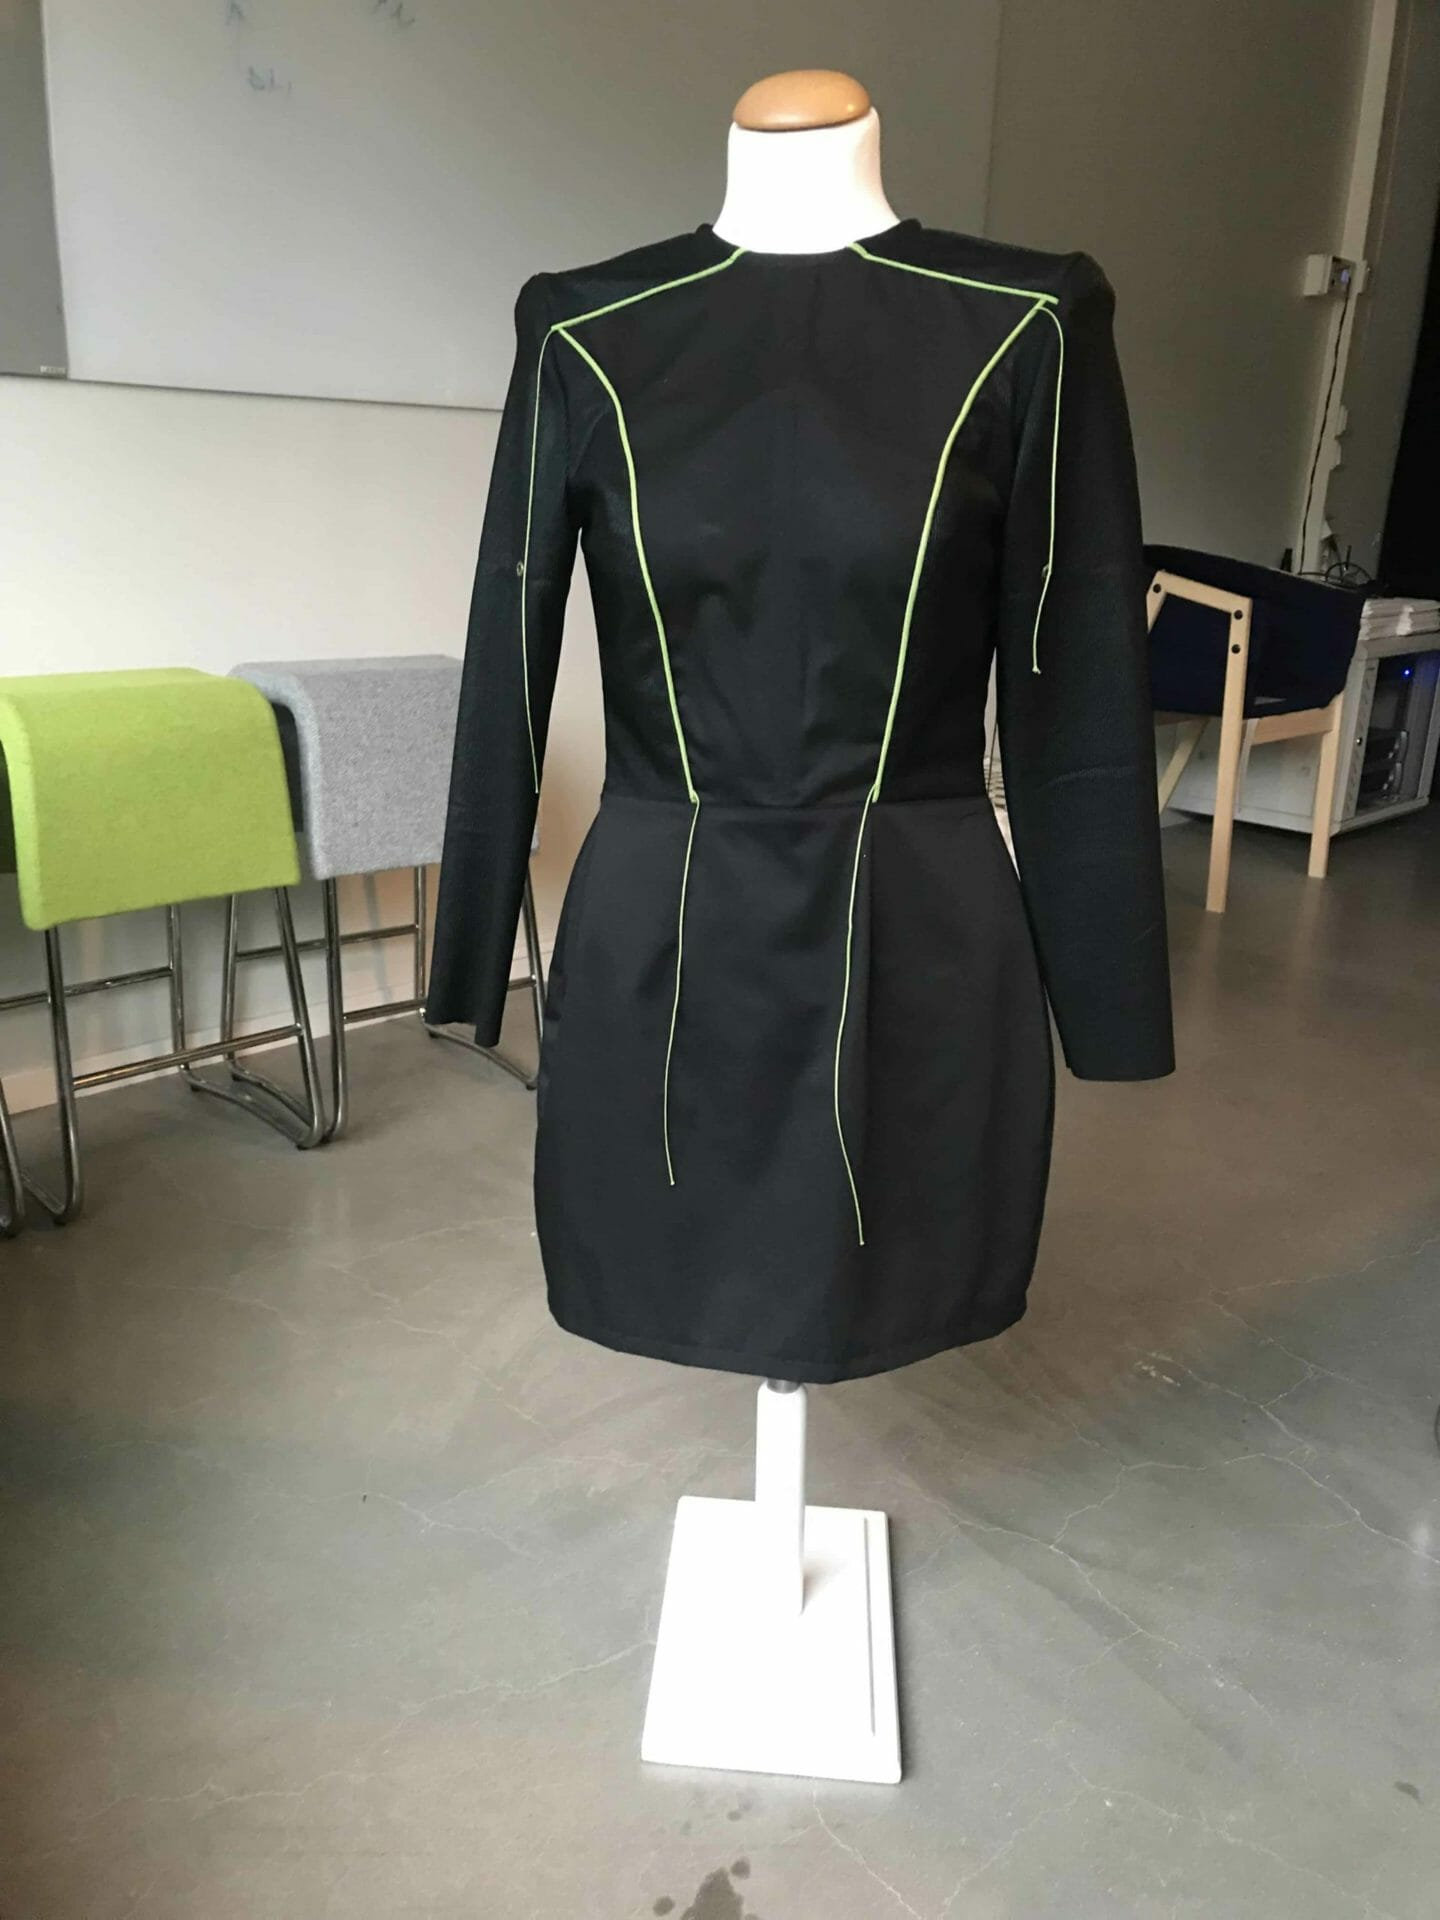 Clothing that allows you to 'feel' somebody looking at you Deafblind UK